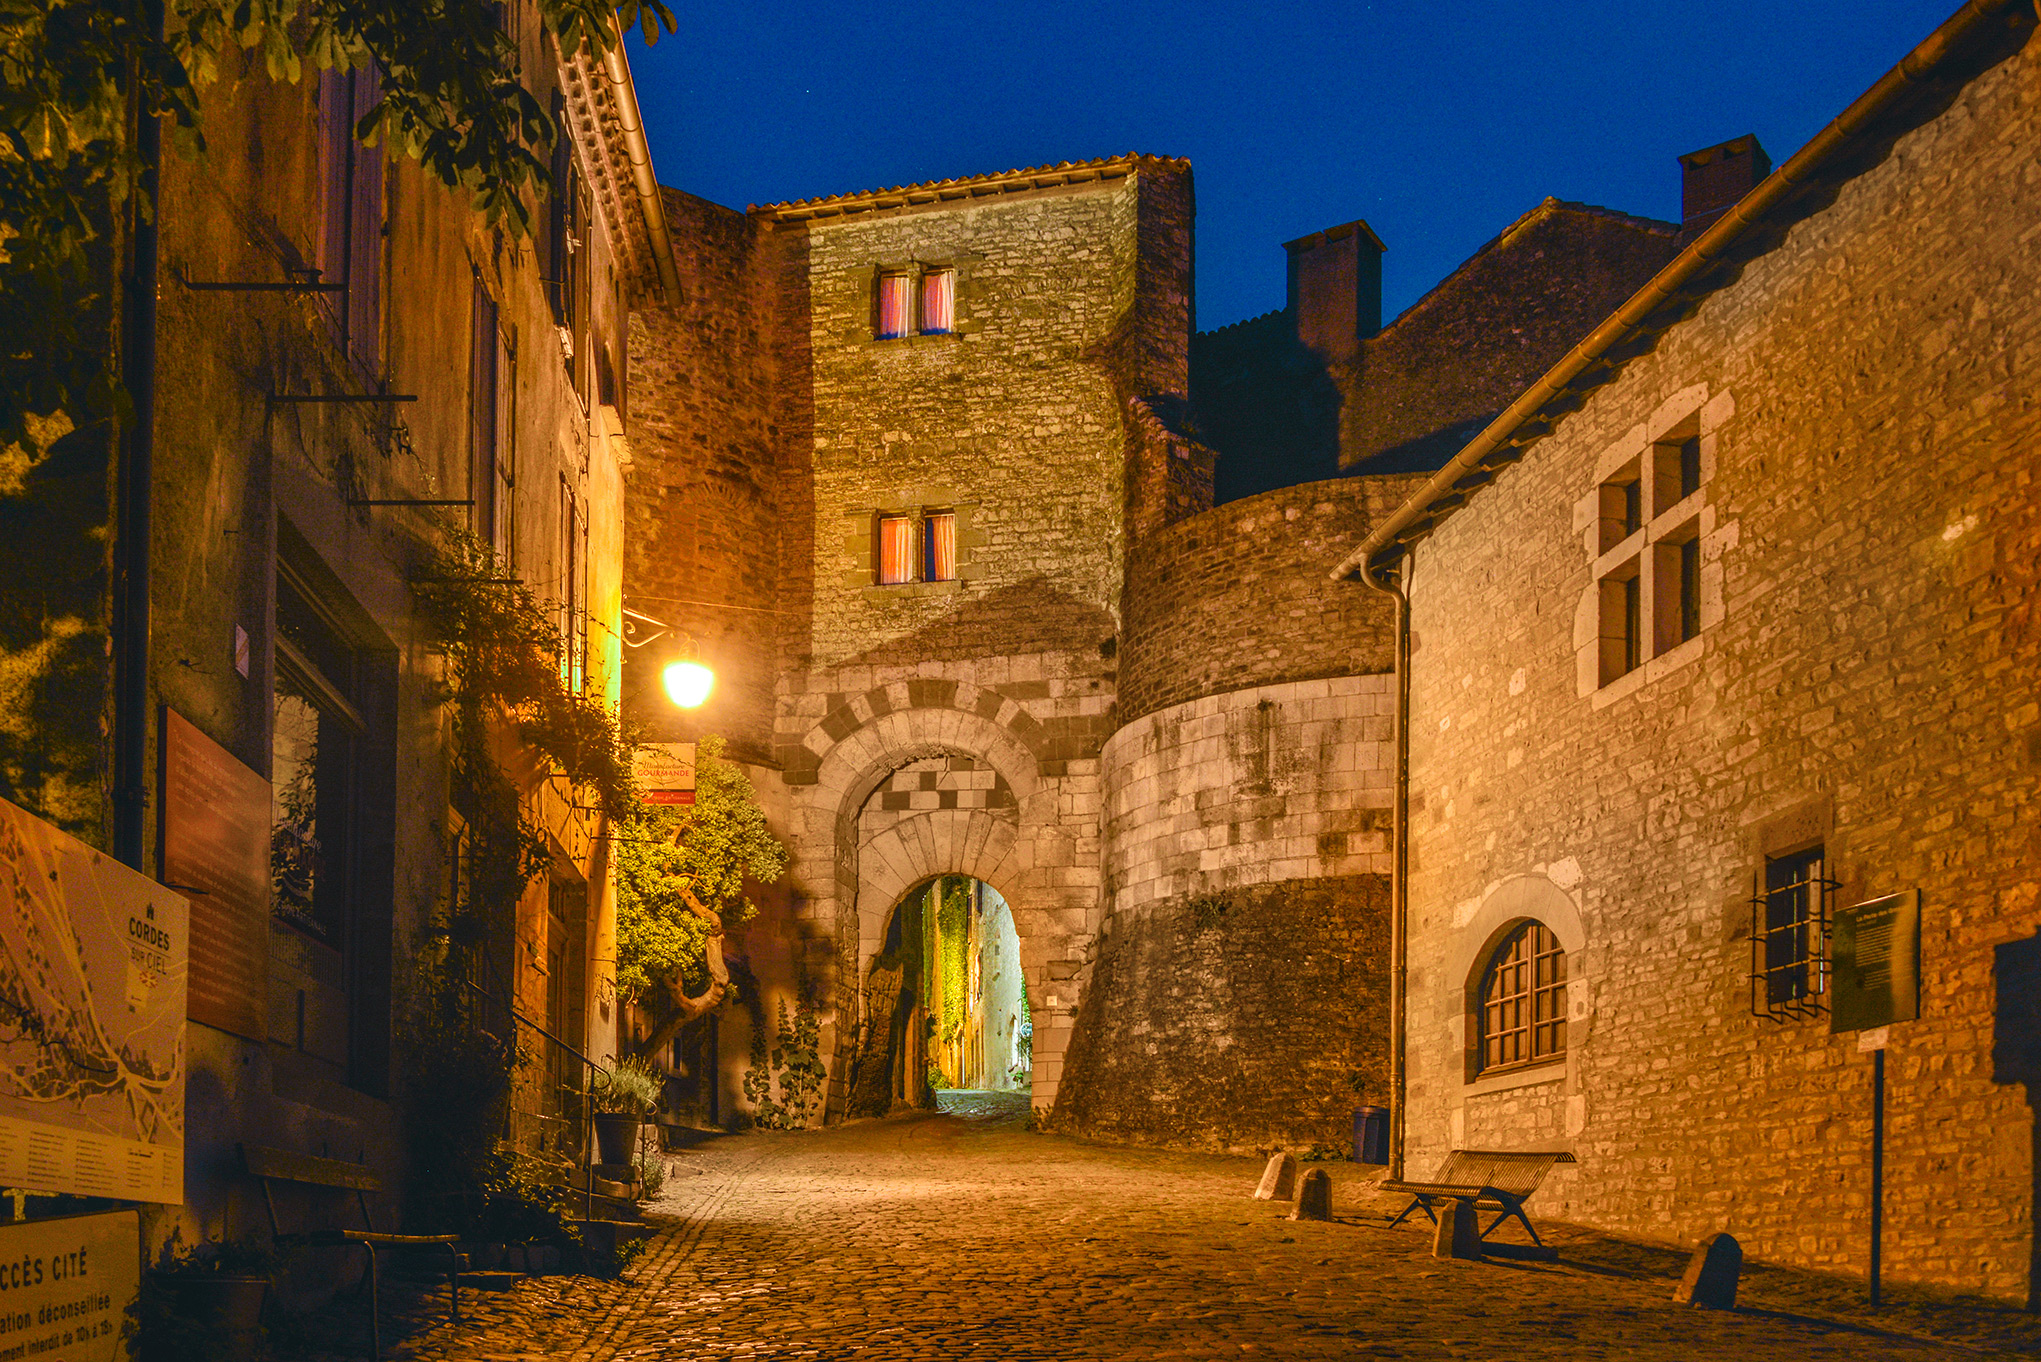 Porte des Ormeaux at twilight